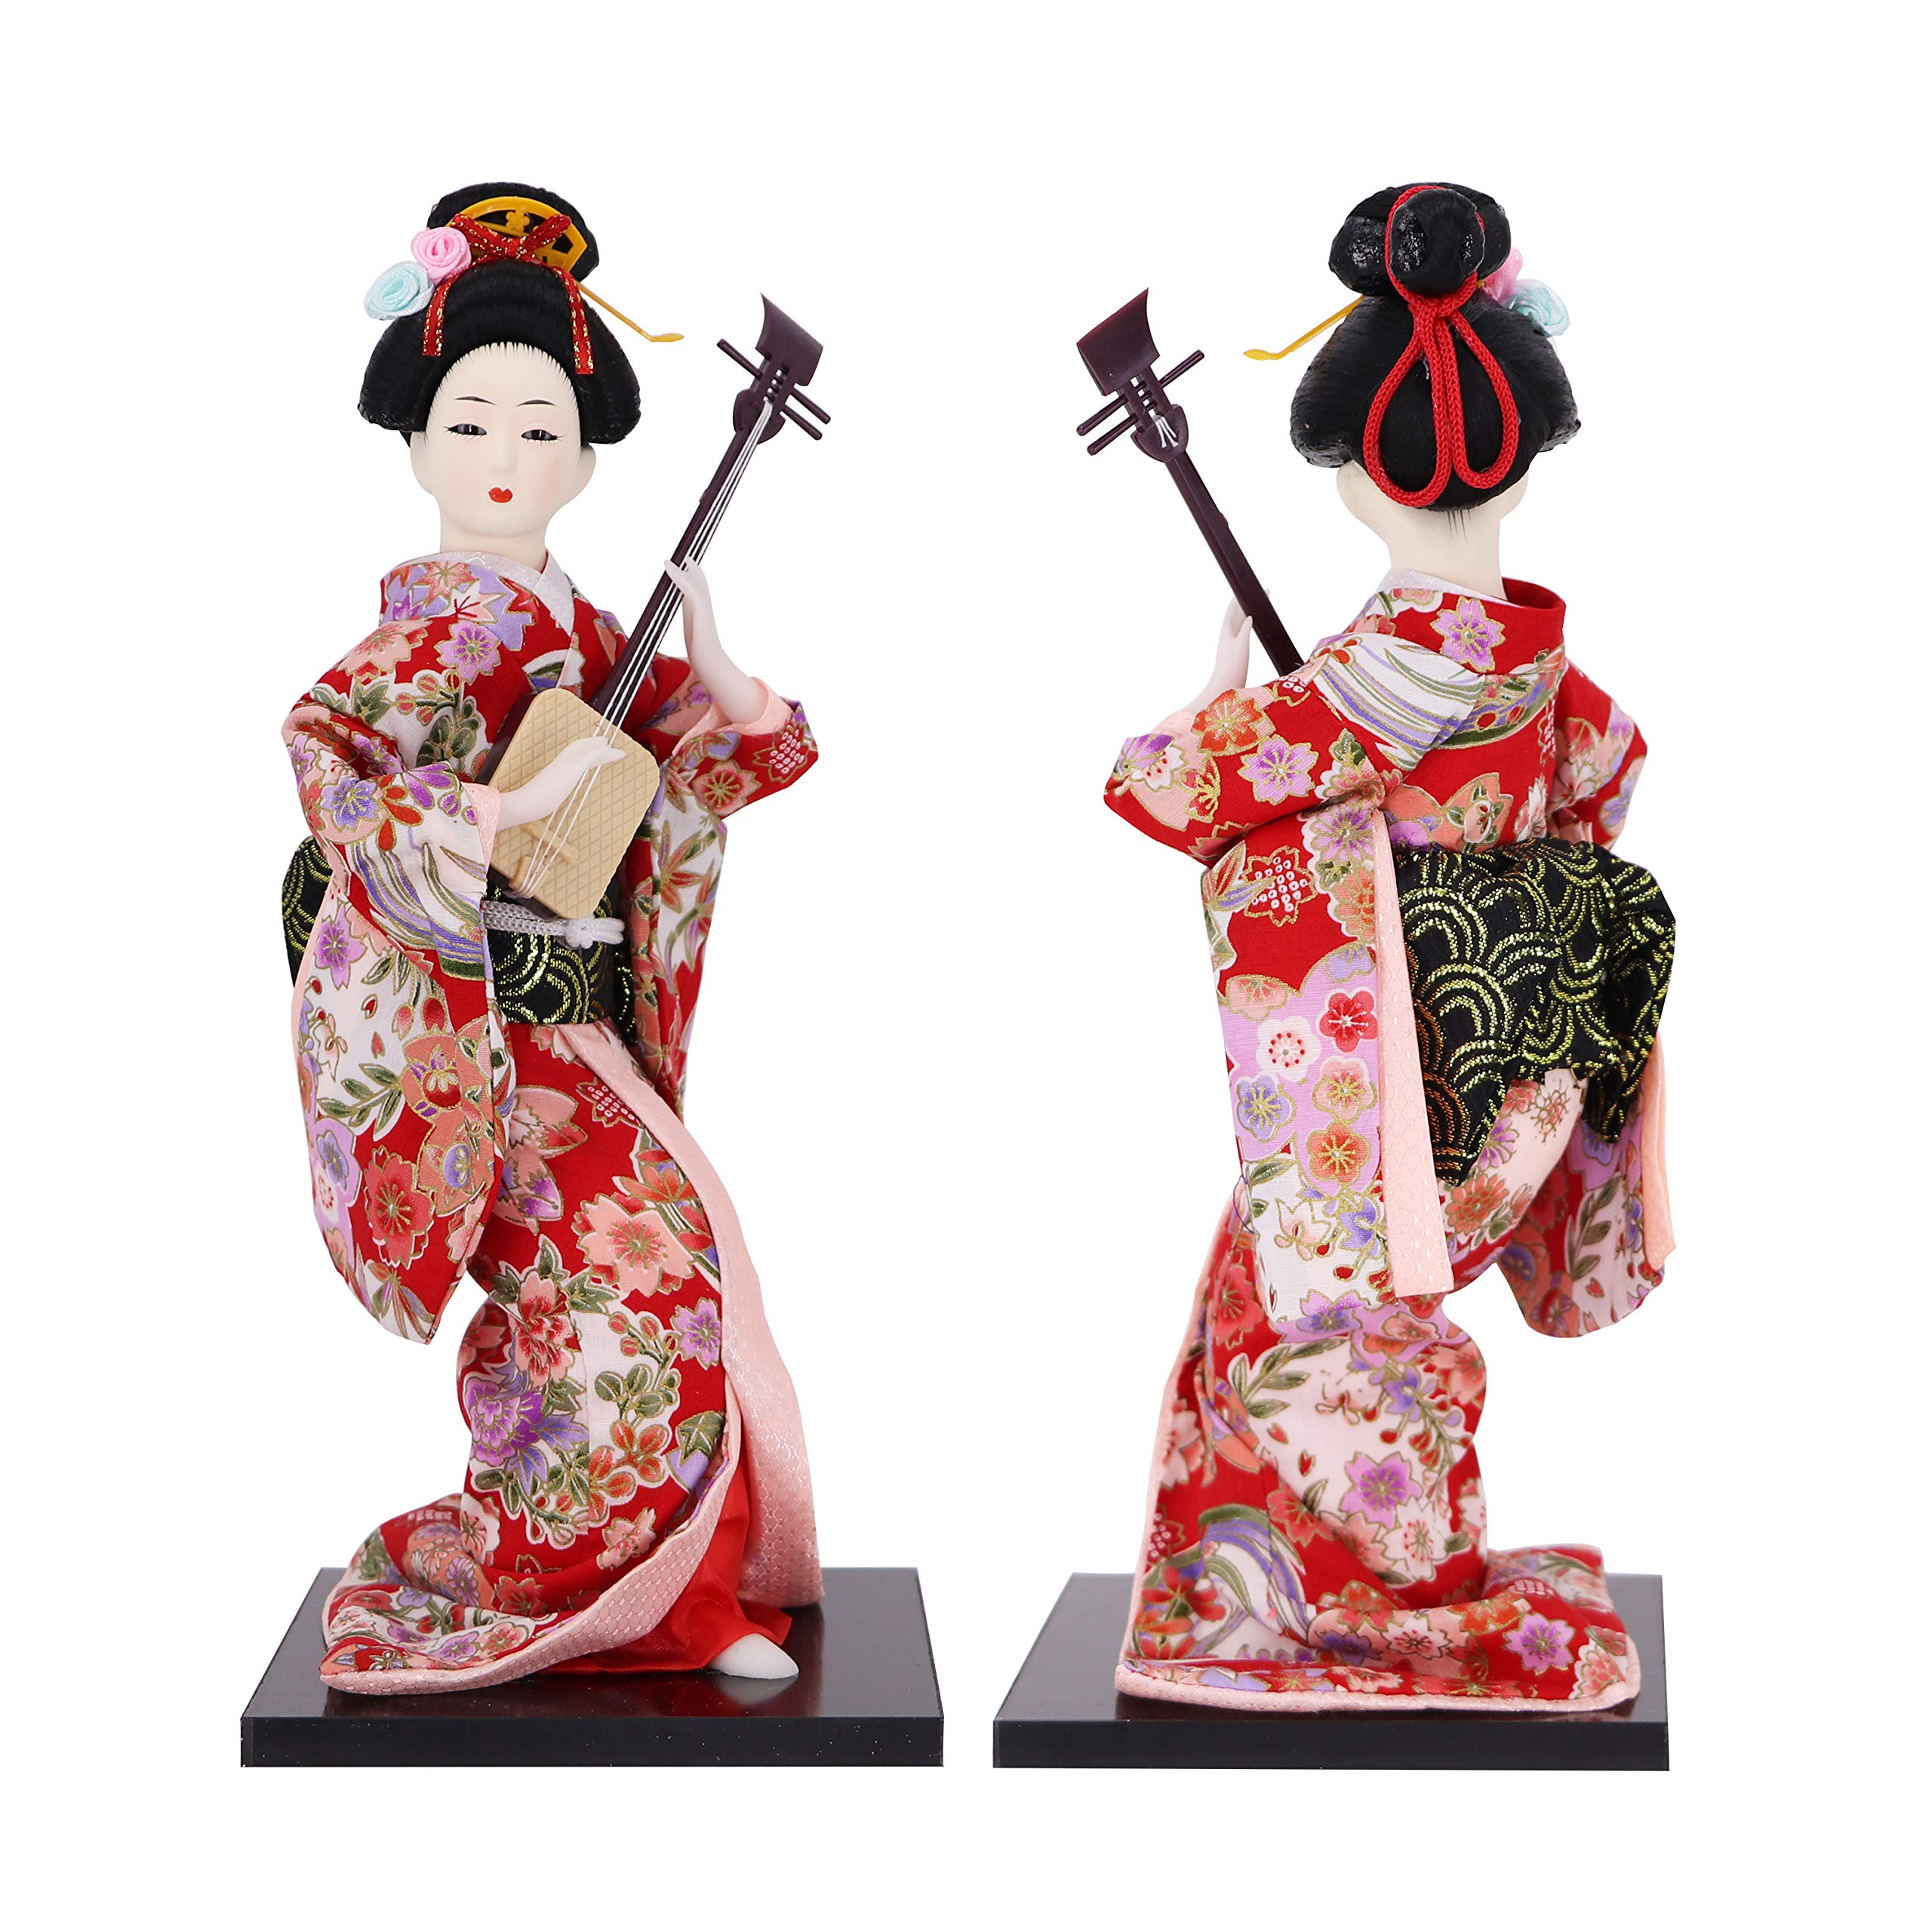 JG.BETTY 12'' 30cm Geisha Japanese Doll Folk Kimono Doll Maiko Doll Puppet Stand on Base for Decorative Home and Hotel Gifts Doll (Floral-JD0012-30) by JG.BETTY